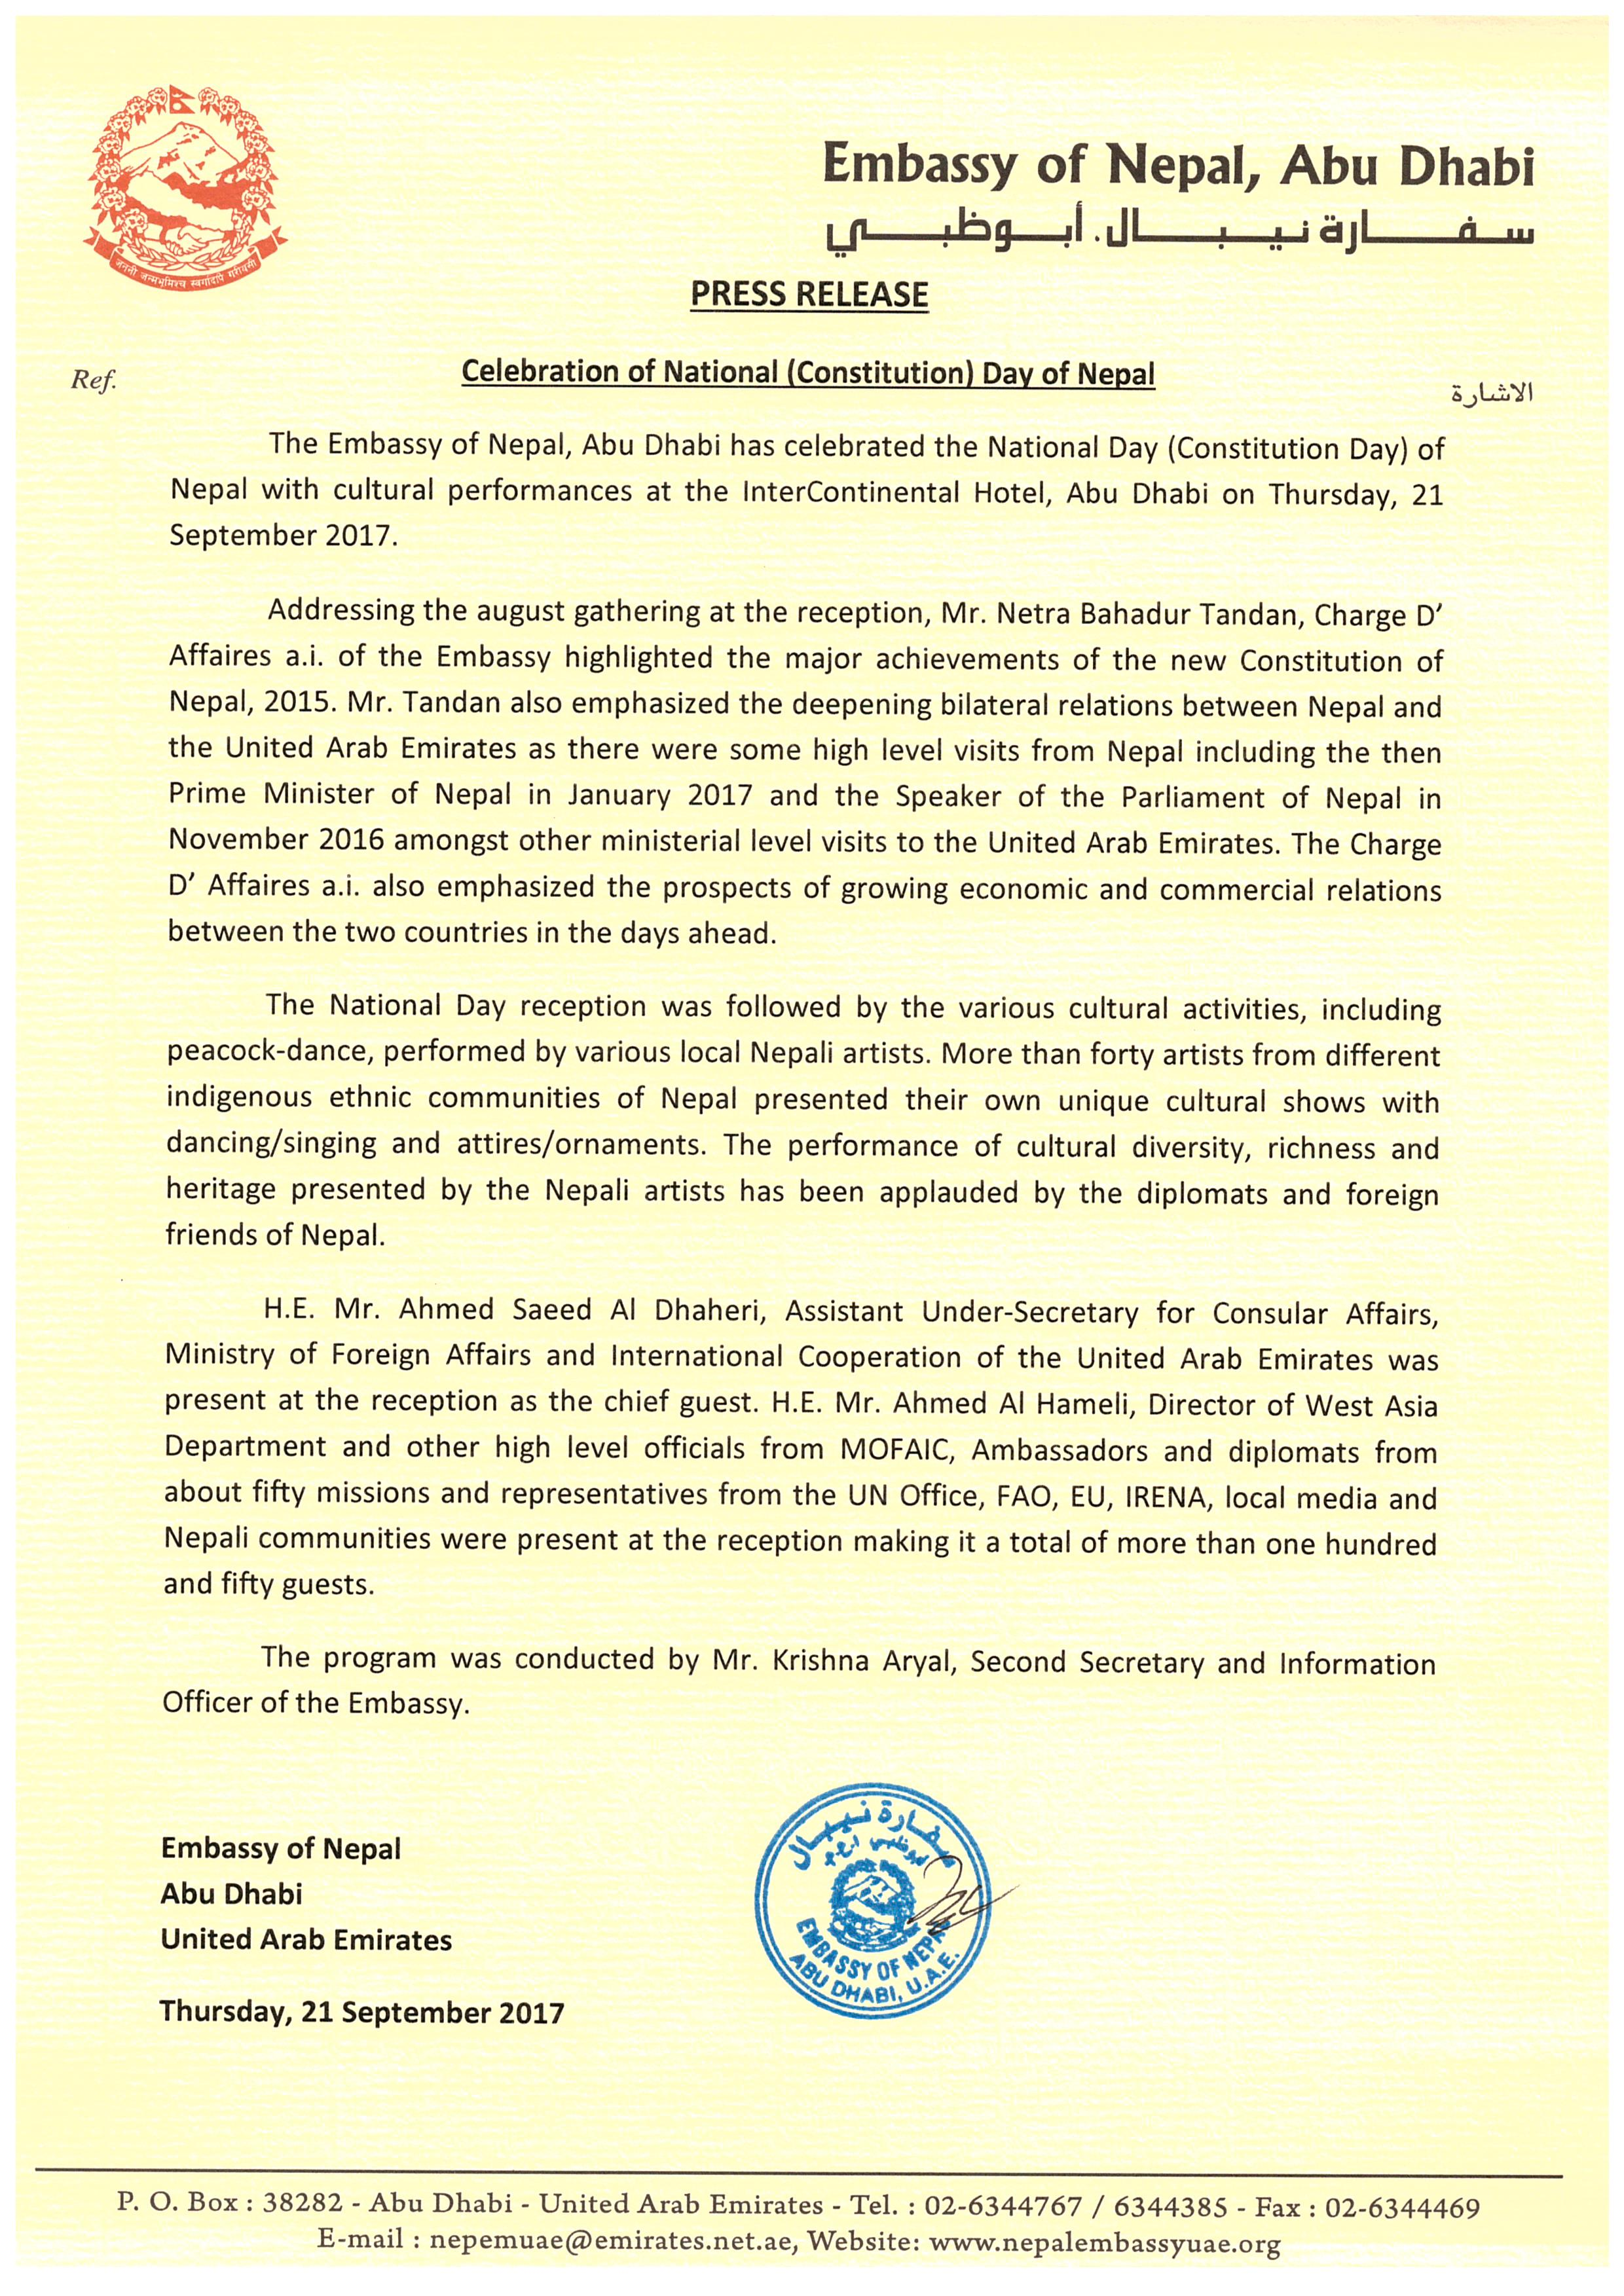 Press Release released by the Embassy after the celebration of